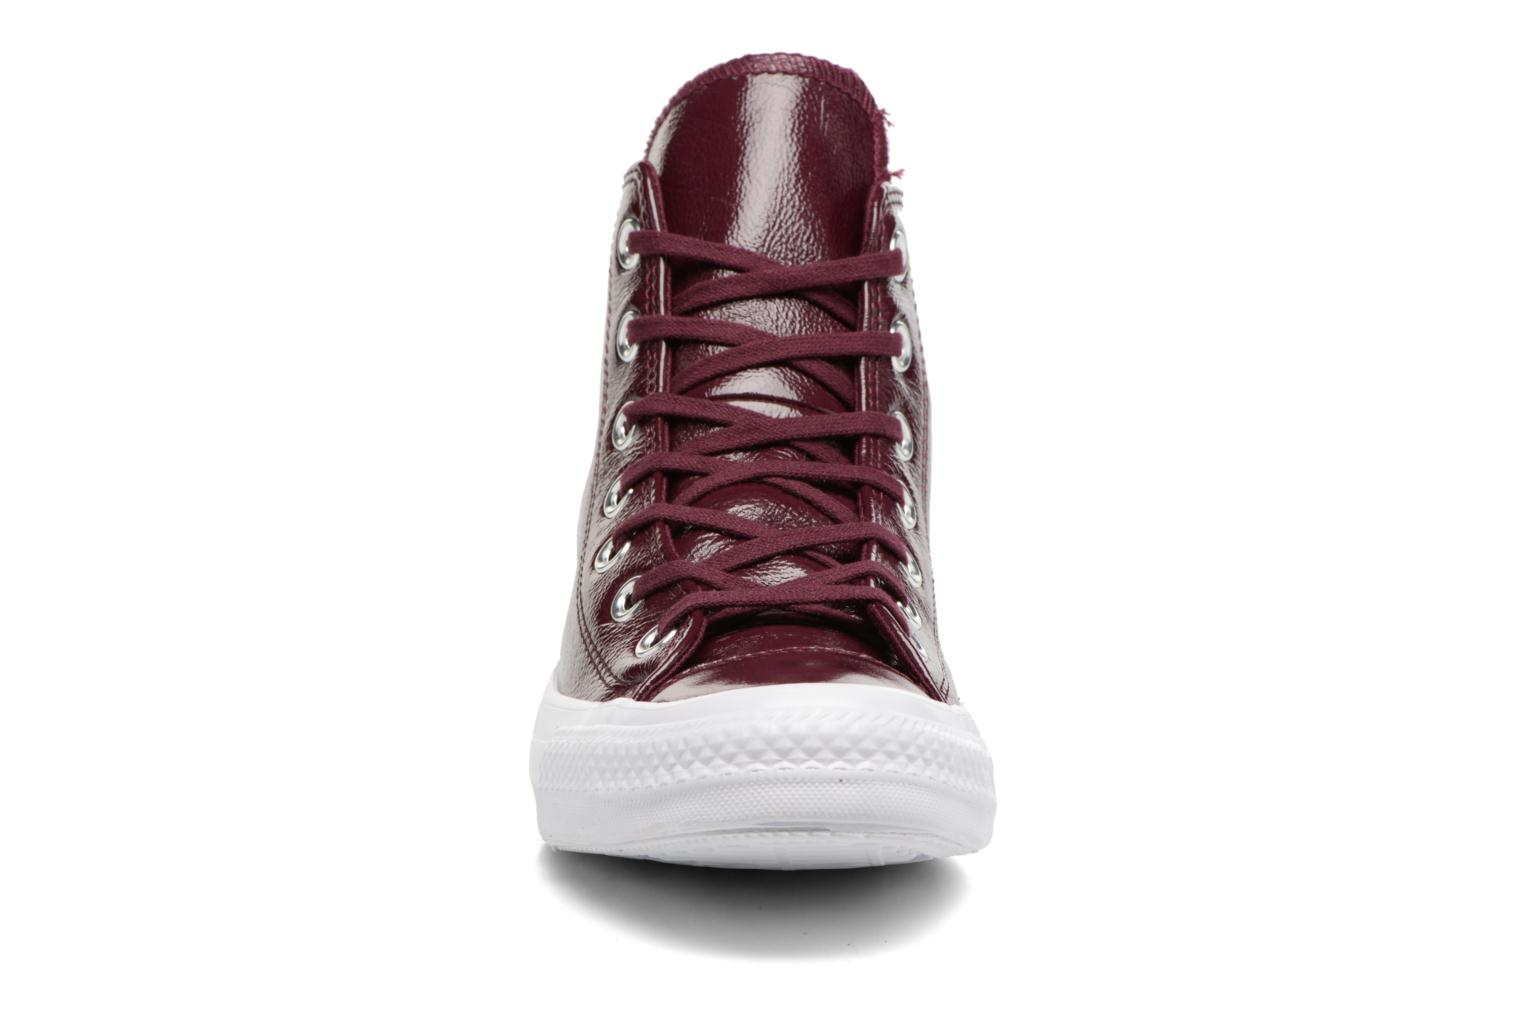 Deportivas Converse Chuck Taylor All Star Crinkled Patent Leather Hi Vino vista del modelo